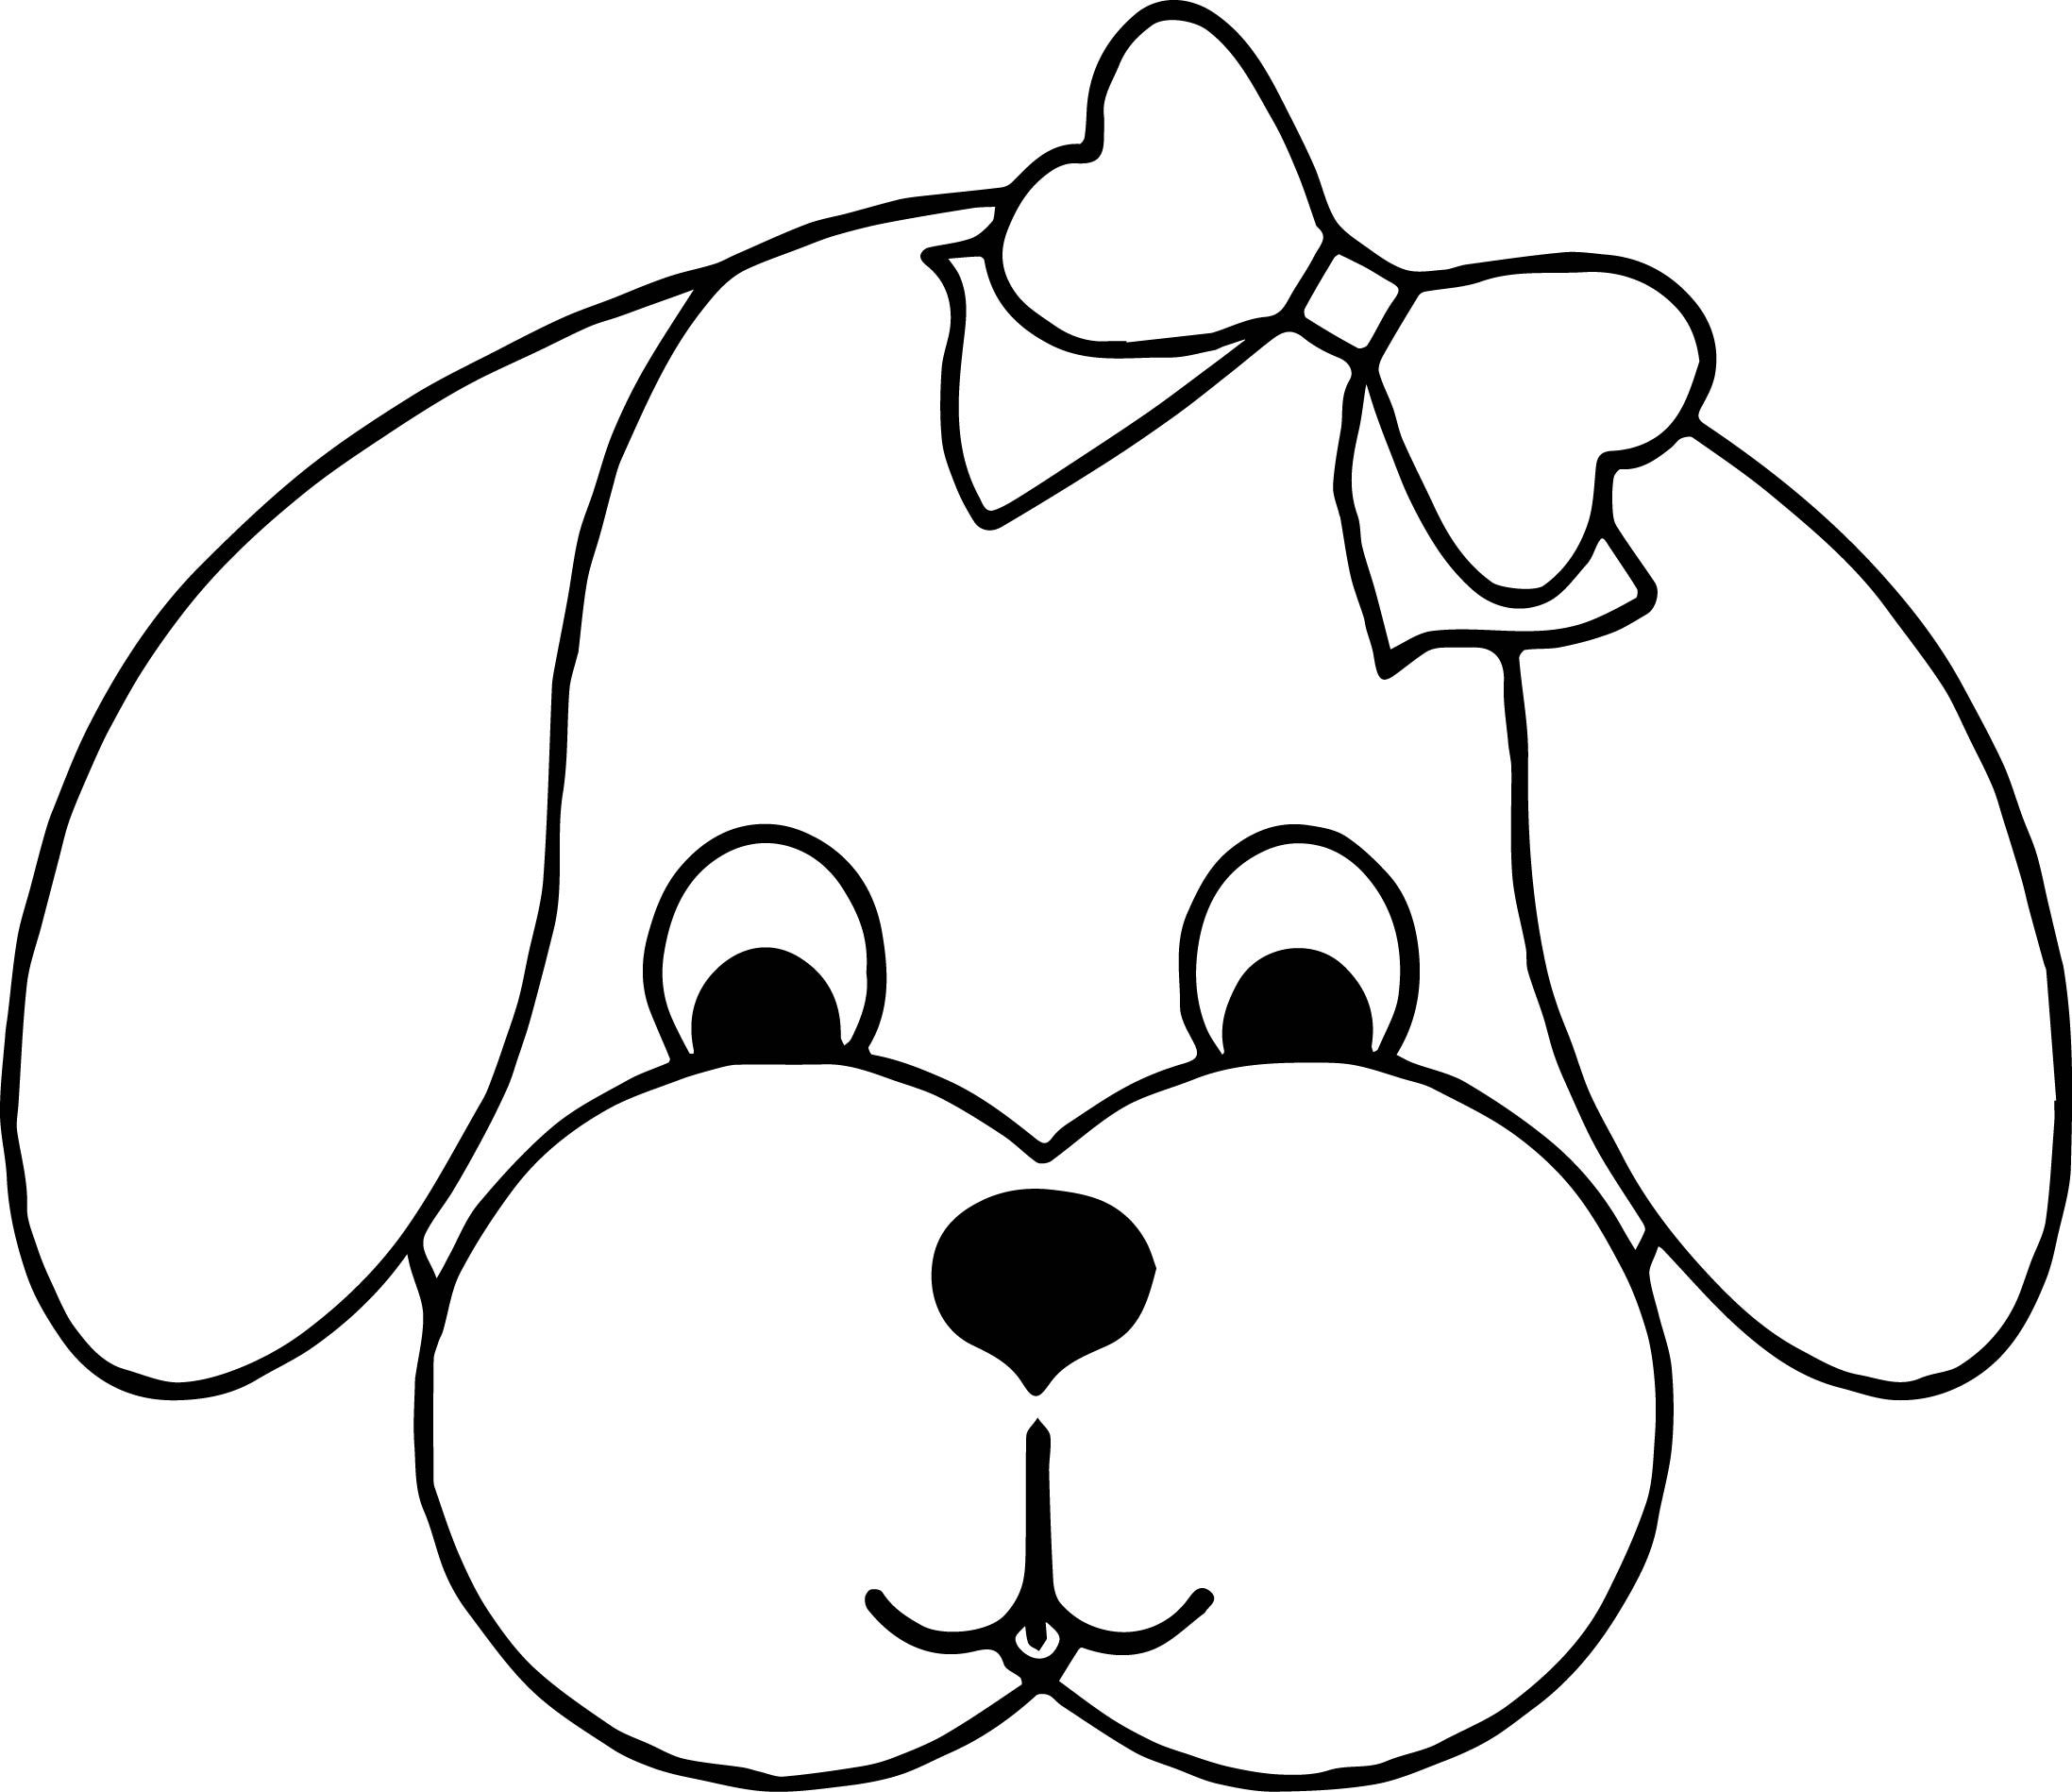 Dog Coloring Pages | Wecoloringpage | Artwork of Dogs | Pinterest | Dog